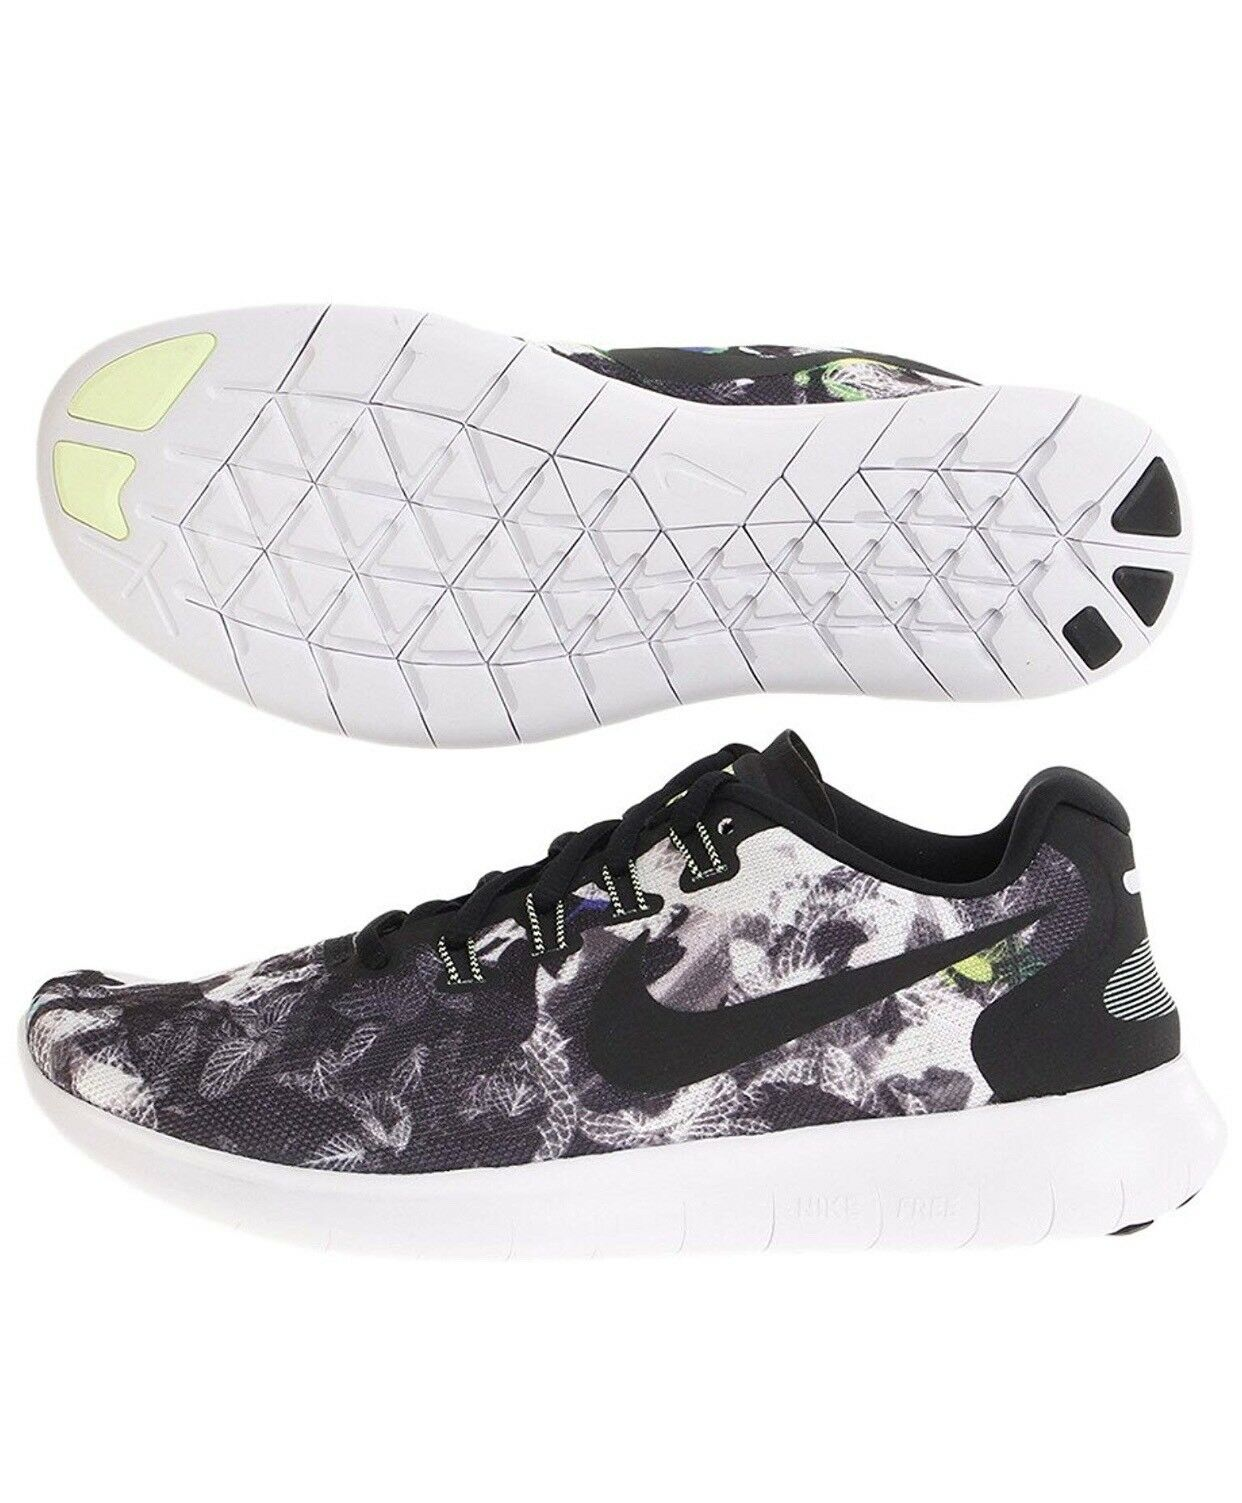 Cheap and beautiful fashion Nike, Mens Free RN 2018 Solstice, 883294 001, Black White, Barely Volt Comfortable